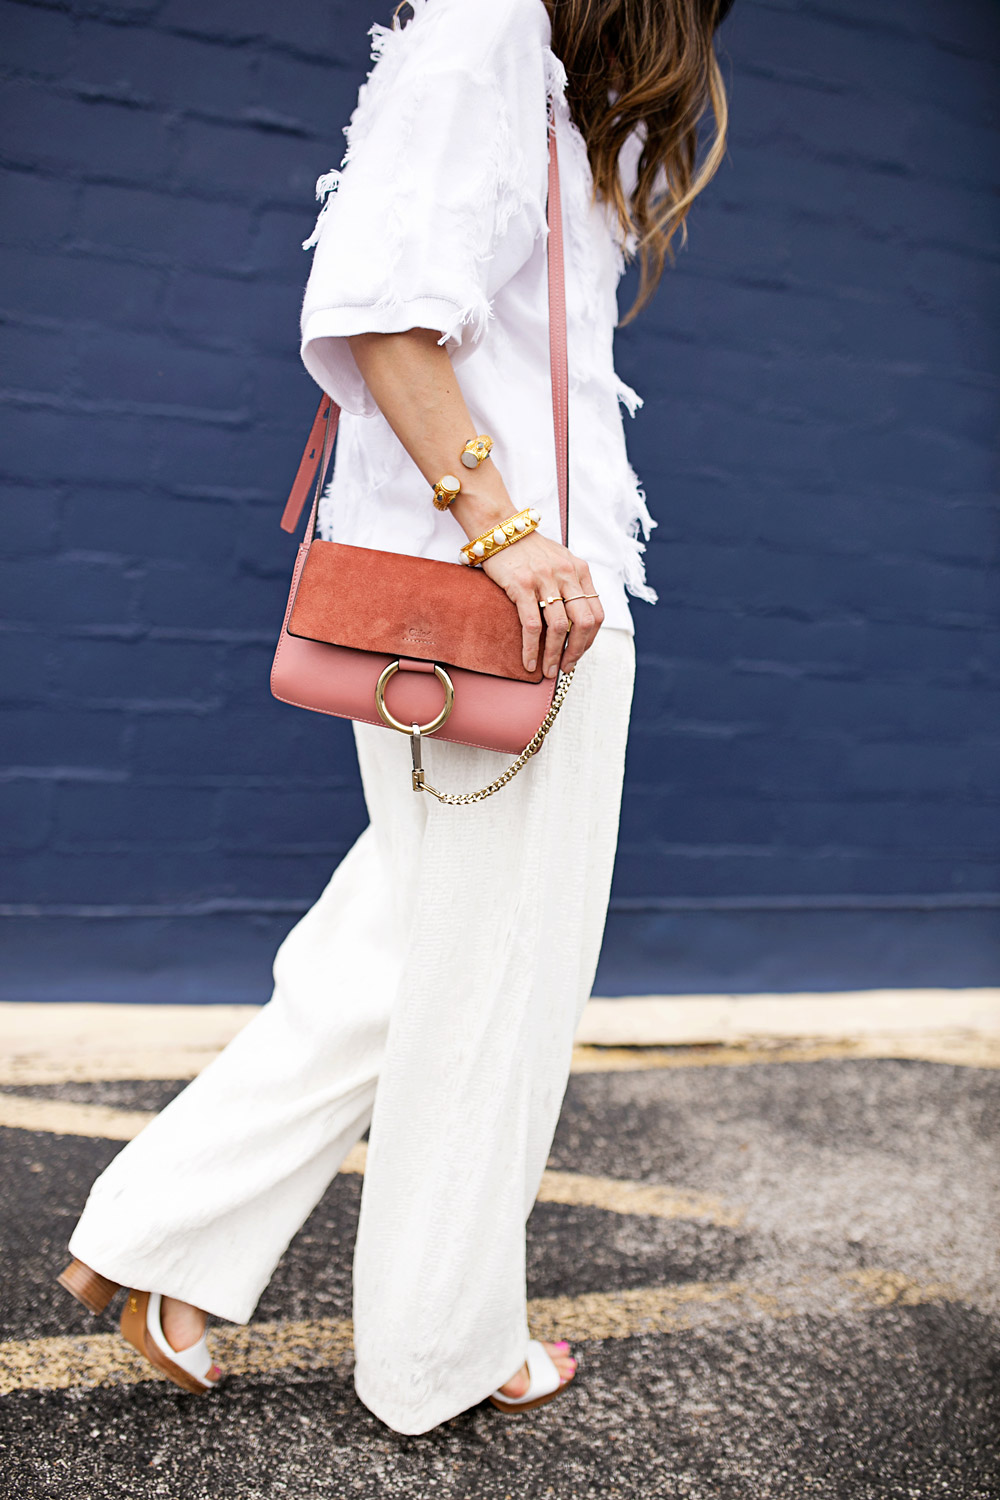 rose pink chloe faye bag, all white outfit